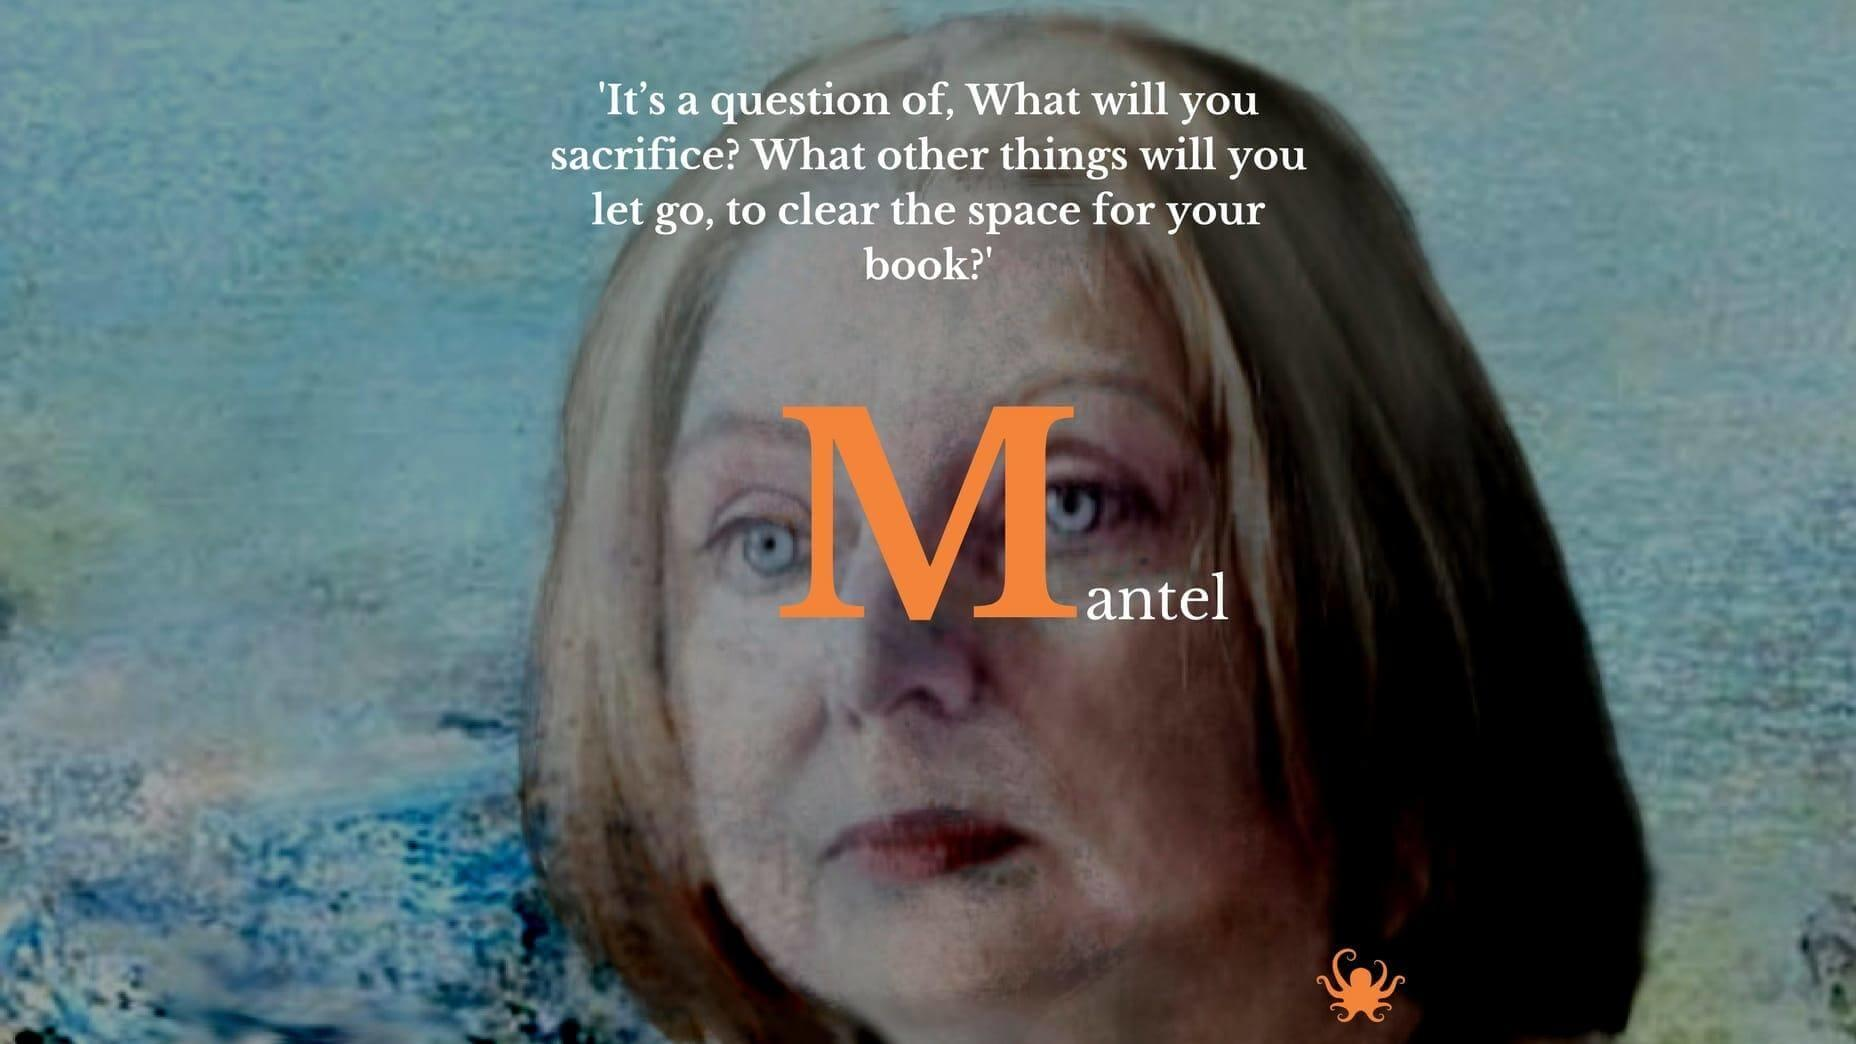 Hilary Mantel advice